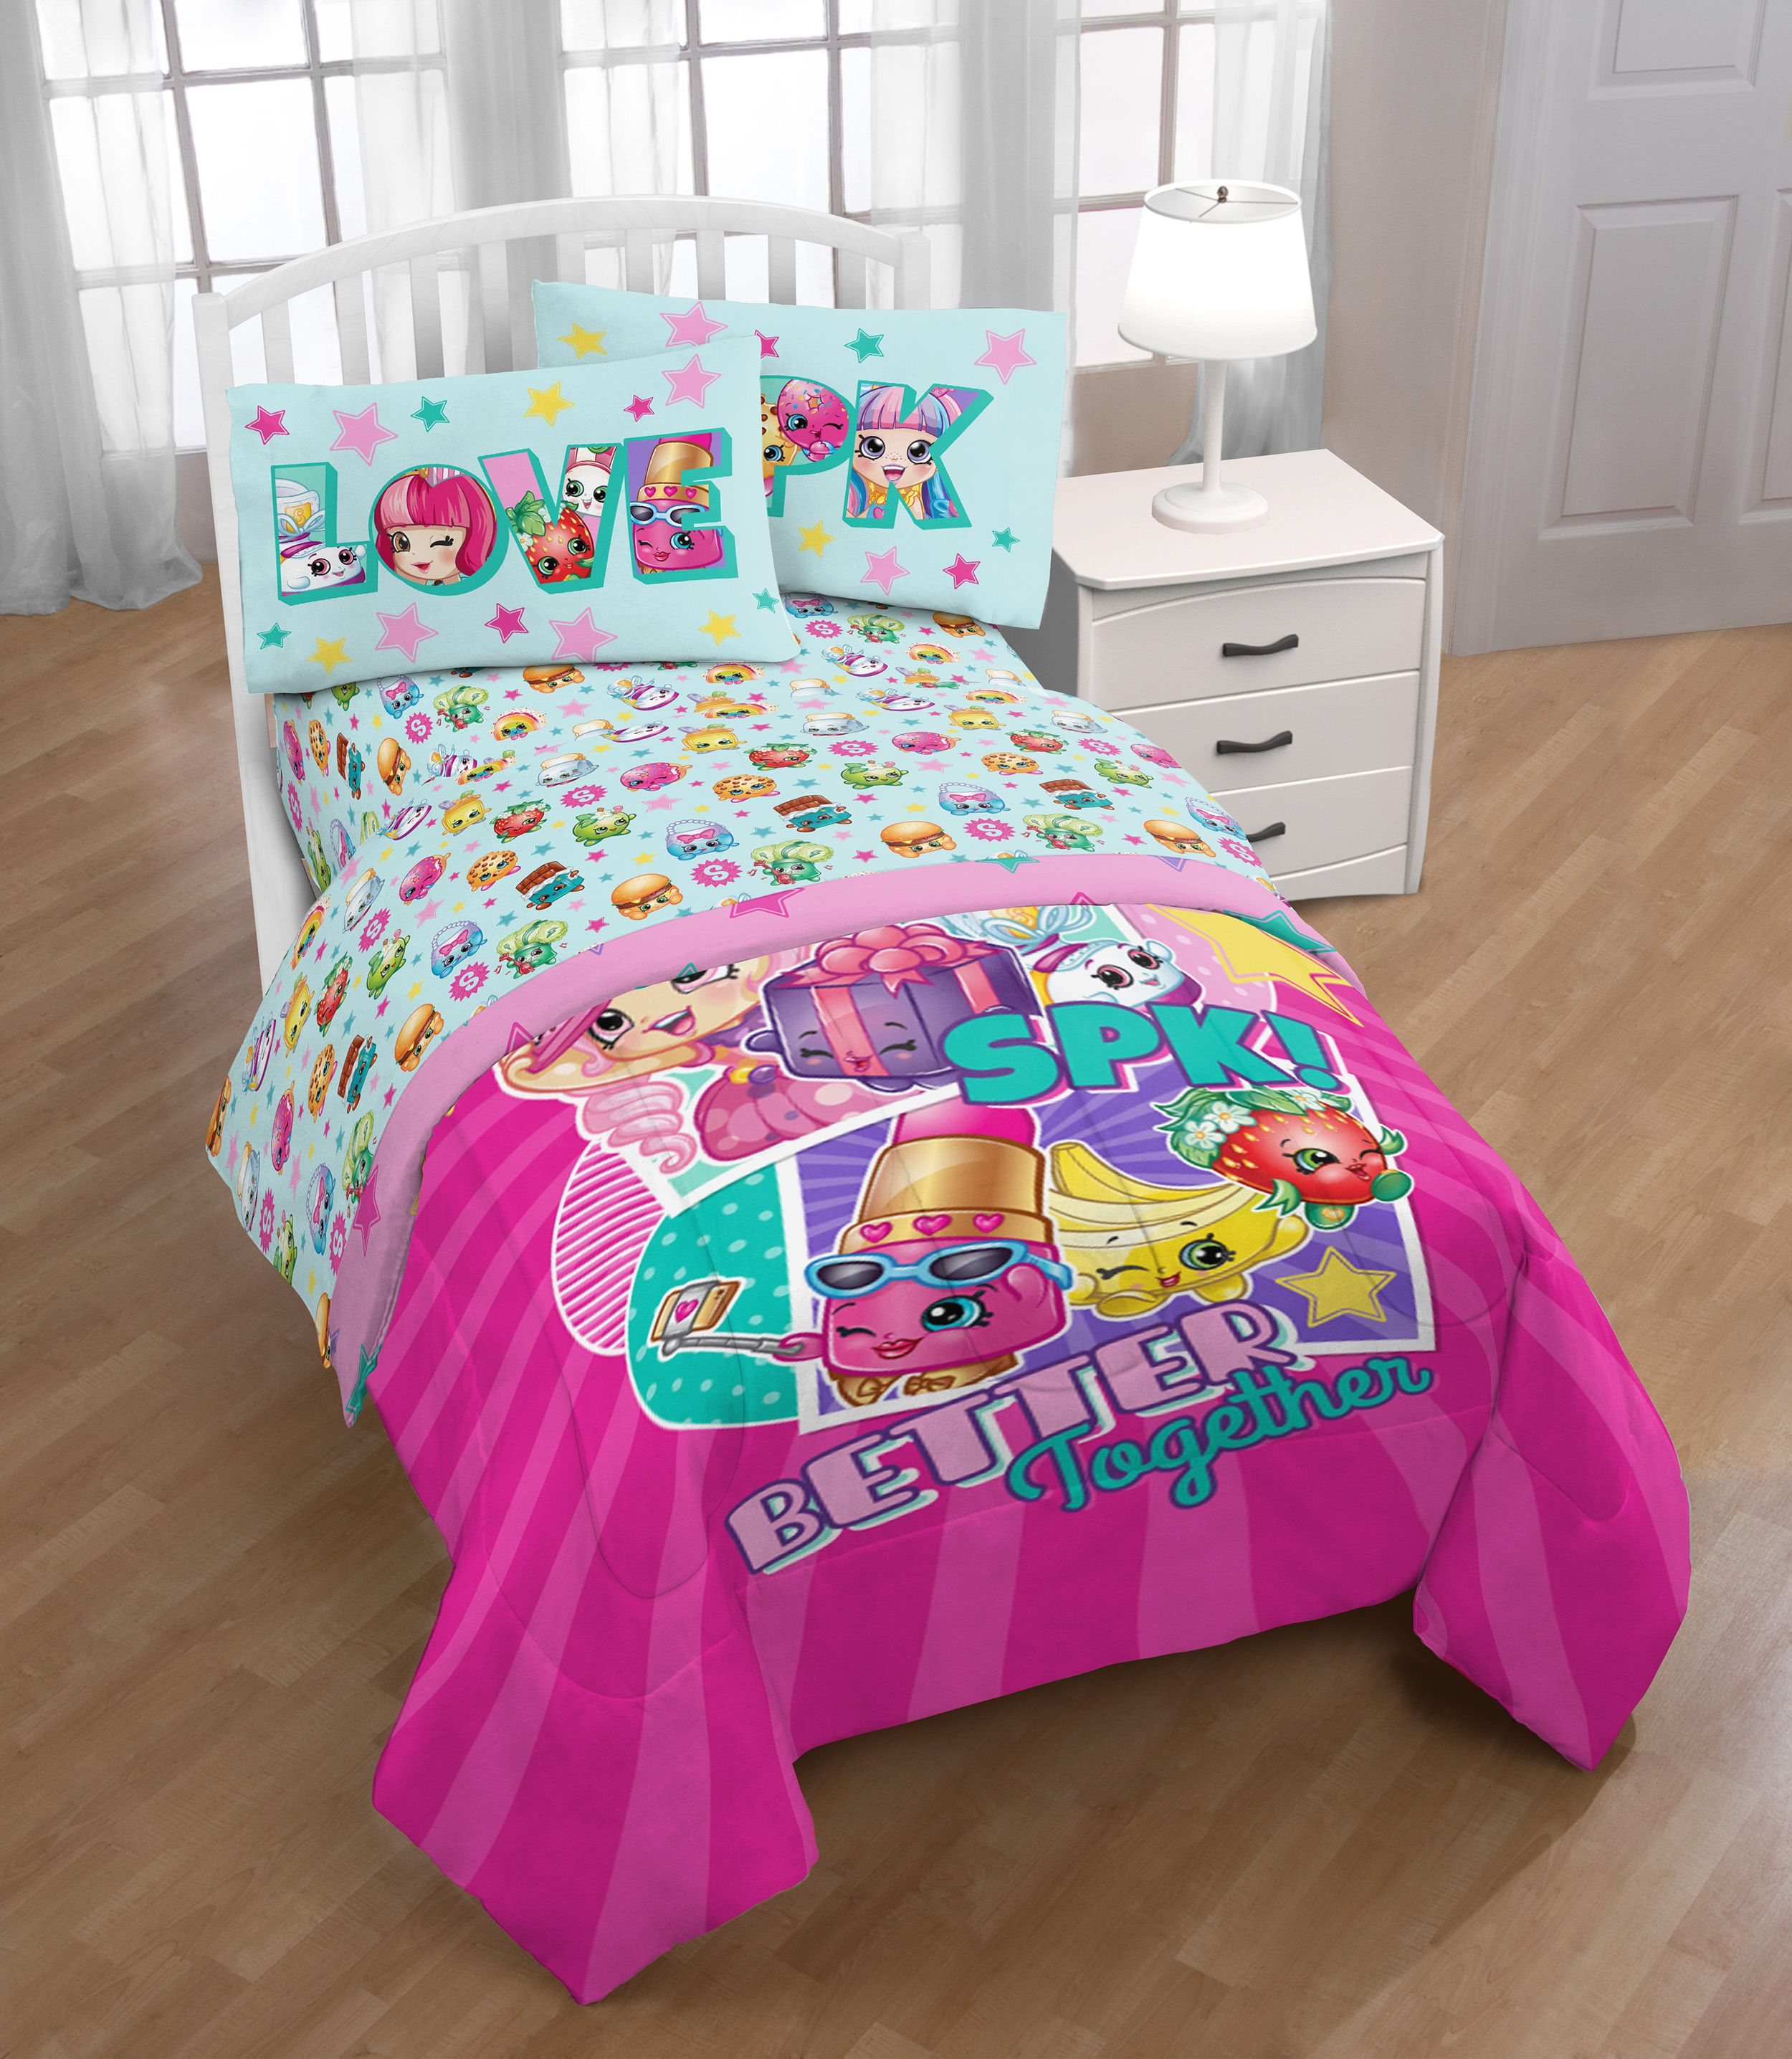 Shopkins Kids 5 Piece Bed In A Bag Twin Bedding Set   Reversible Comforter,  Microfiber